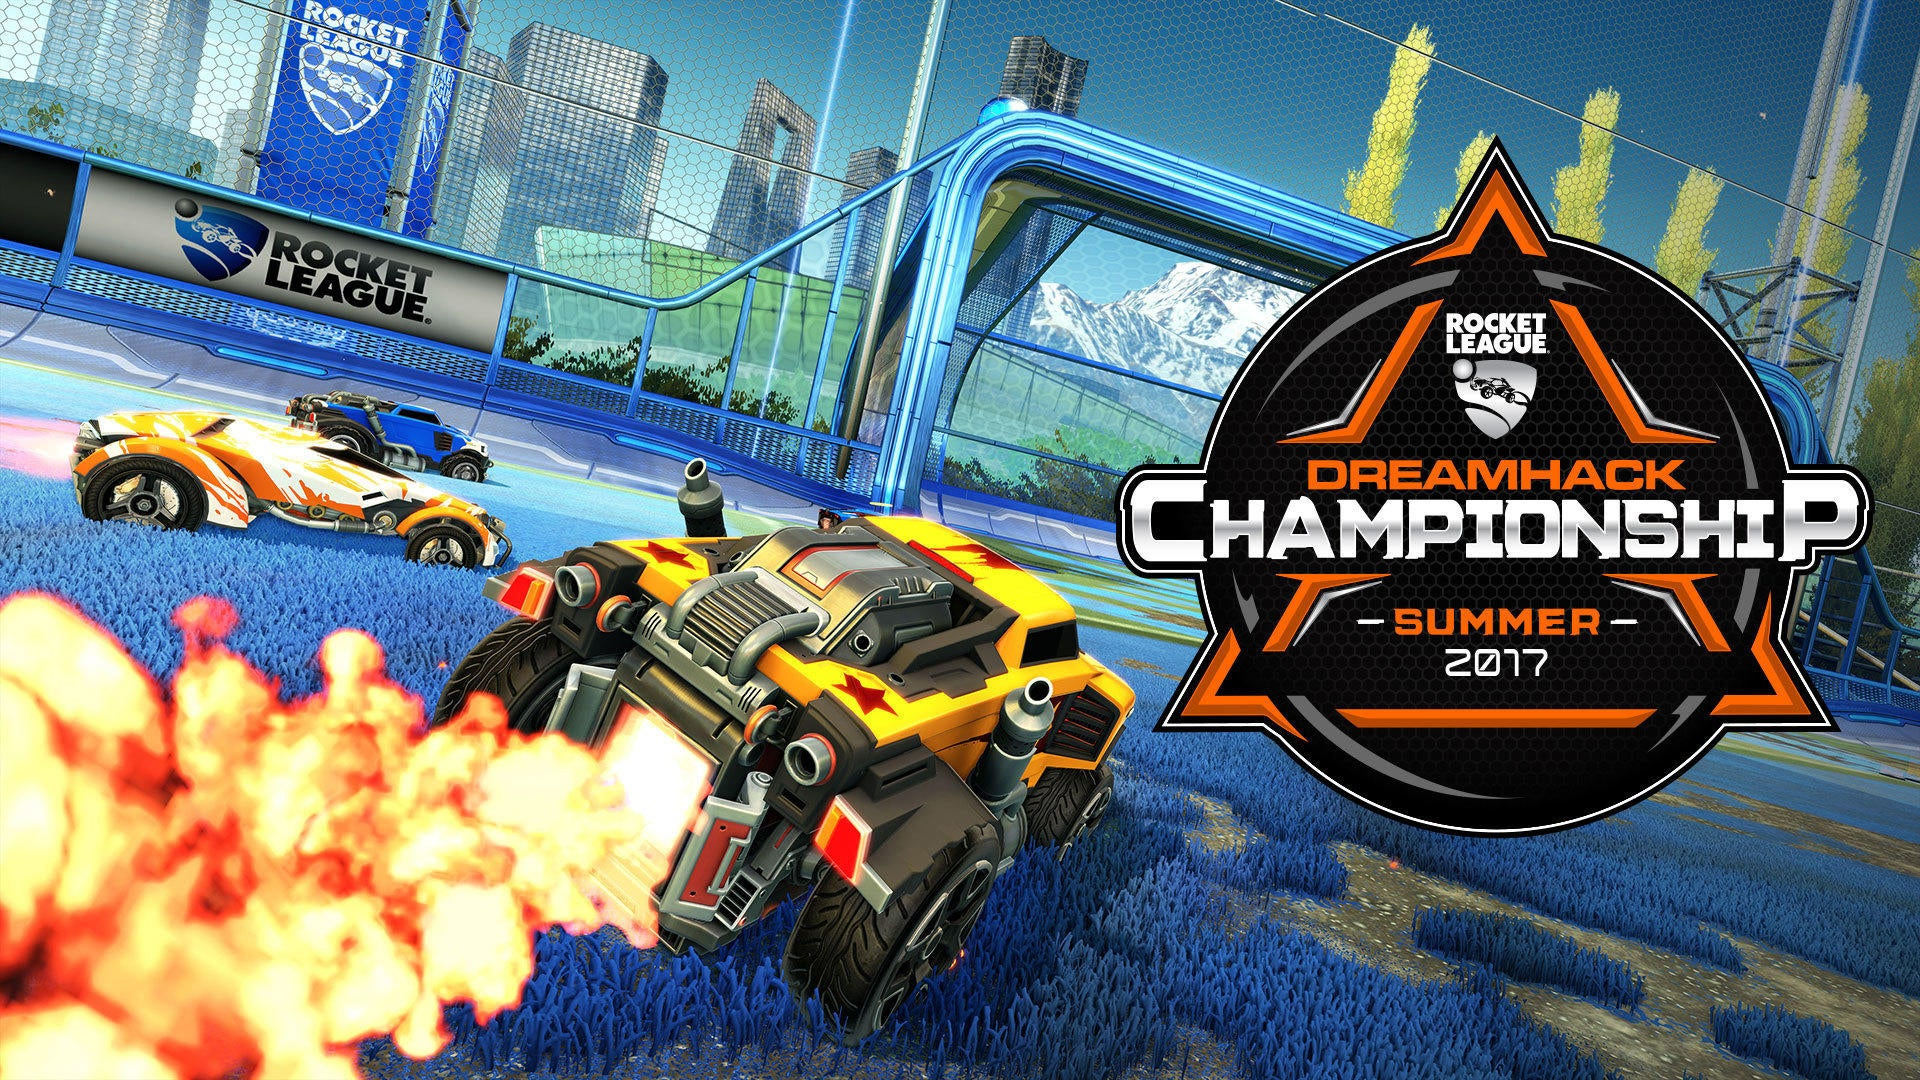 DreamHack Summer Rocket League Championship Preview Image